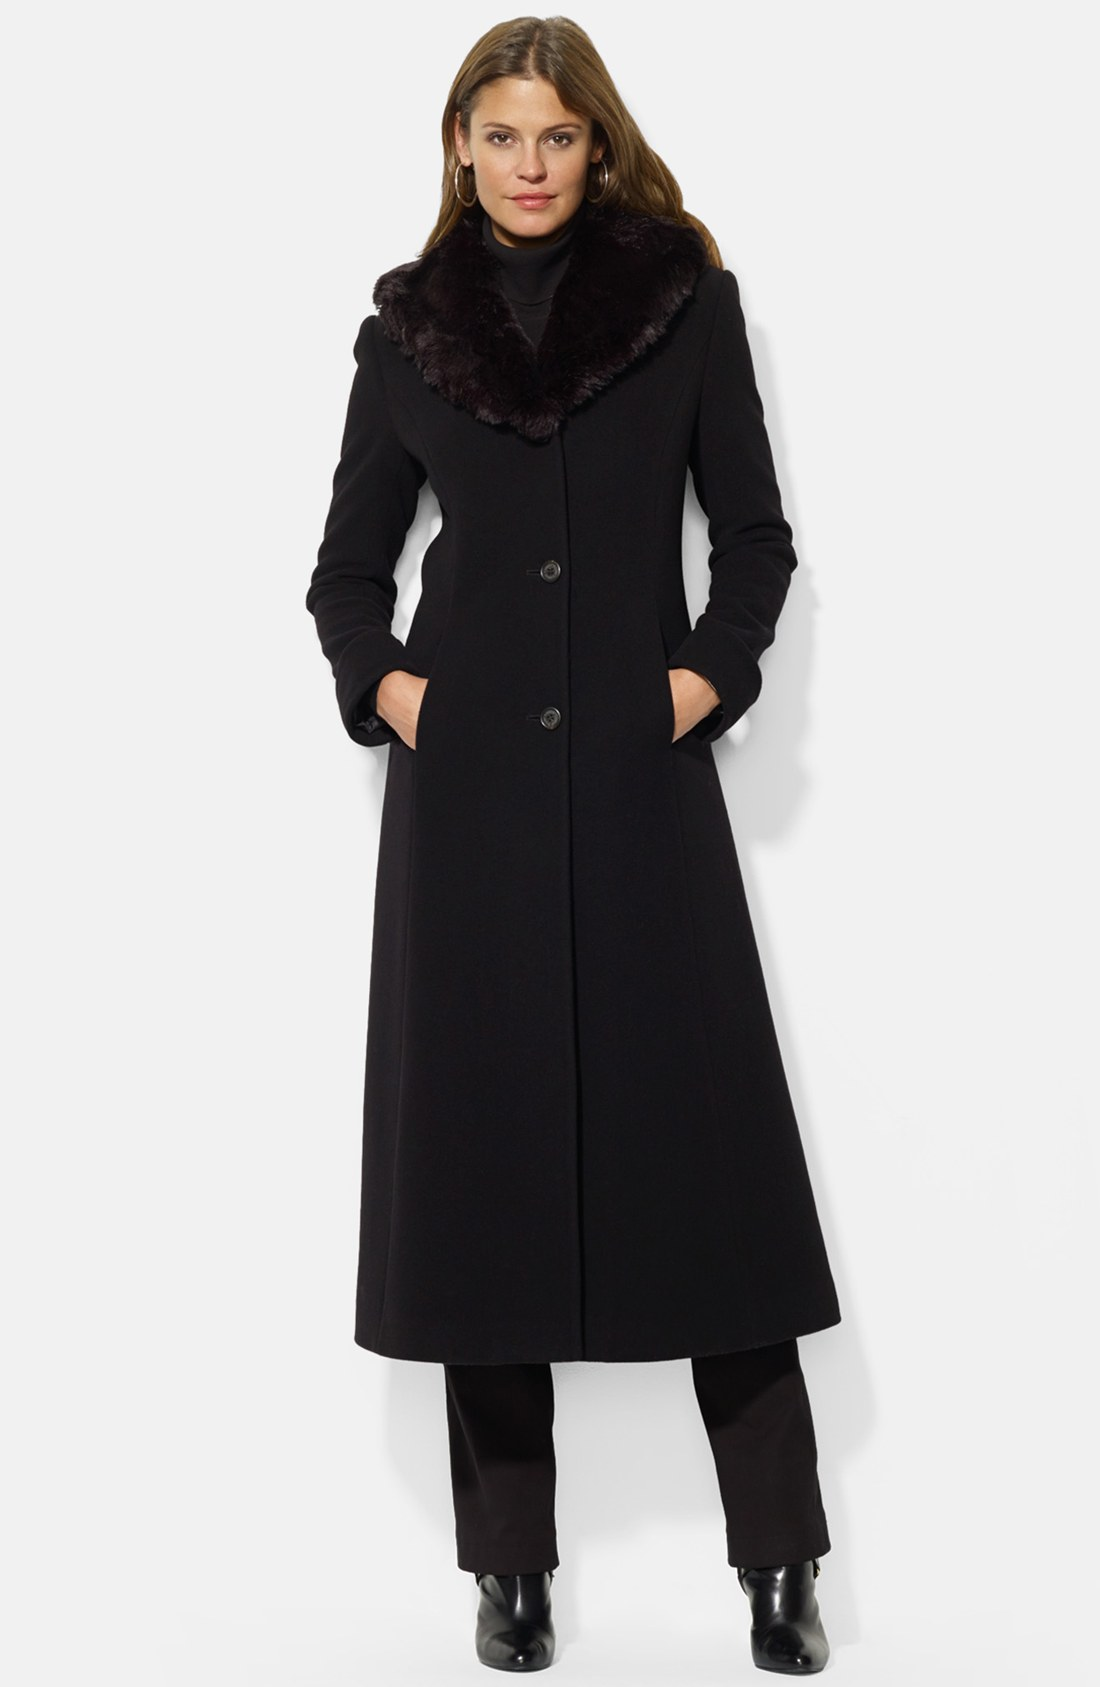 Long Wool Coat: The Best Ways To Wear One – careyfashion.com